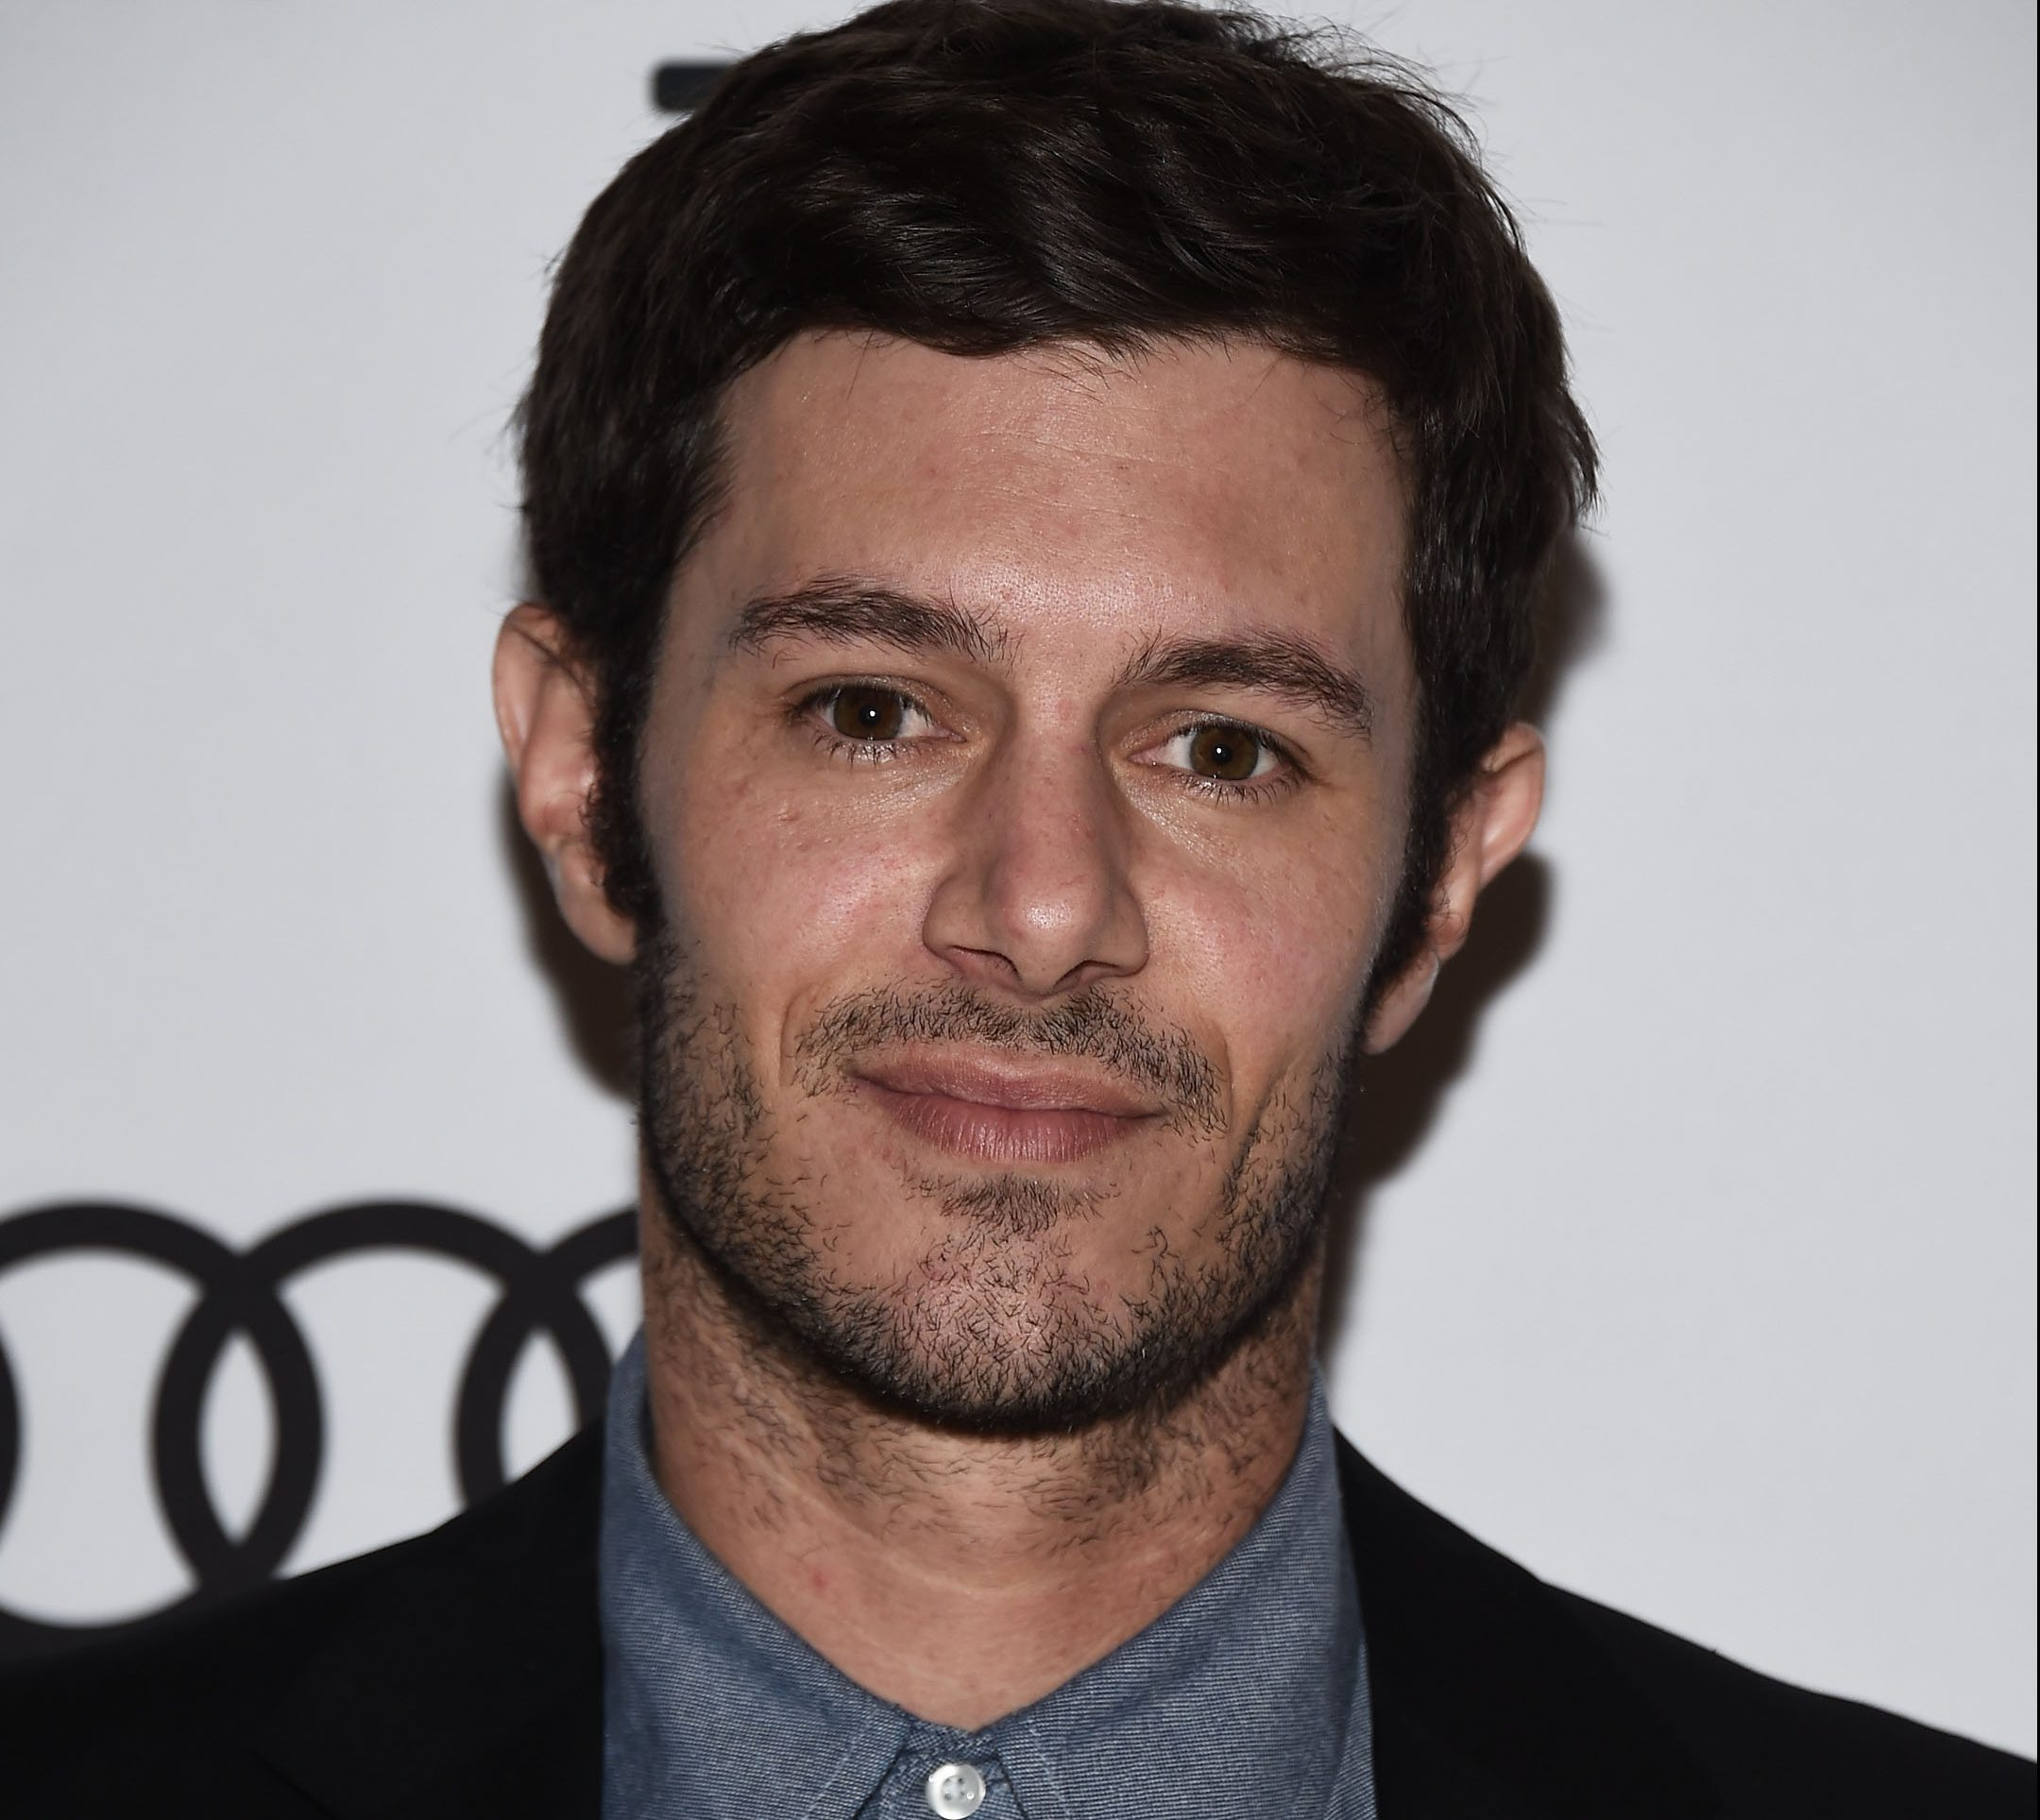 Adam Brody 'joins cast of DC's Shazam!' alongside Zachary Levi and Asher Angel